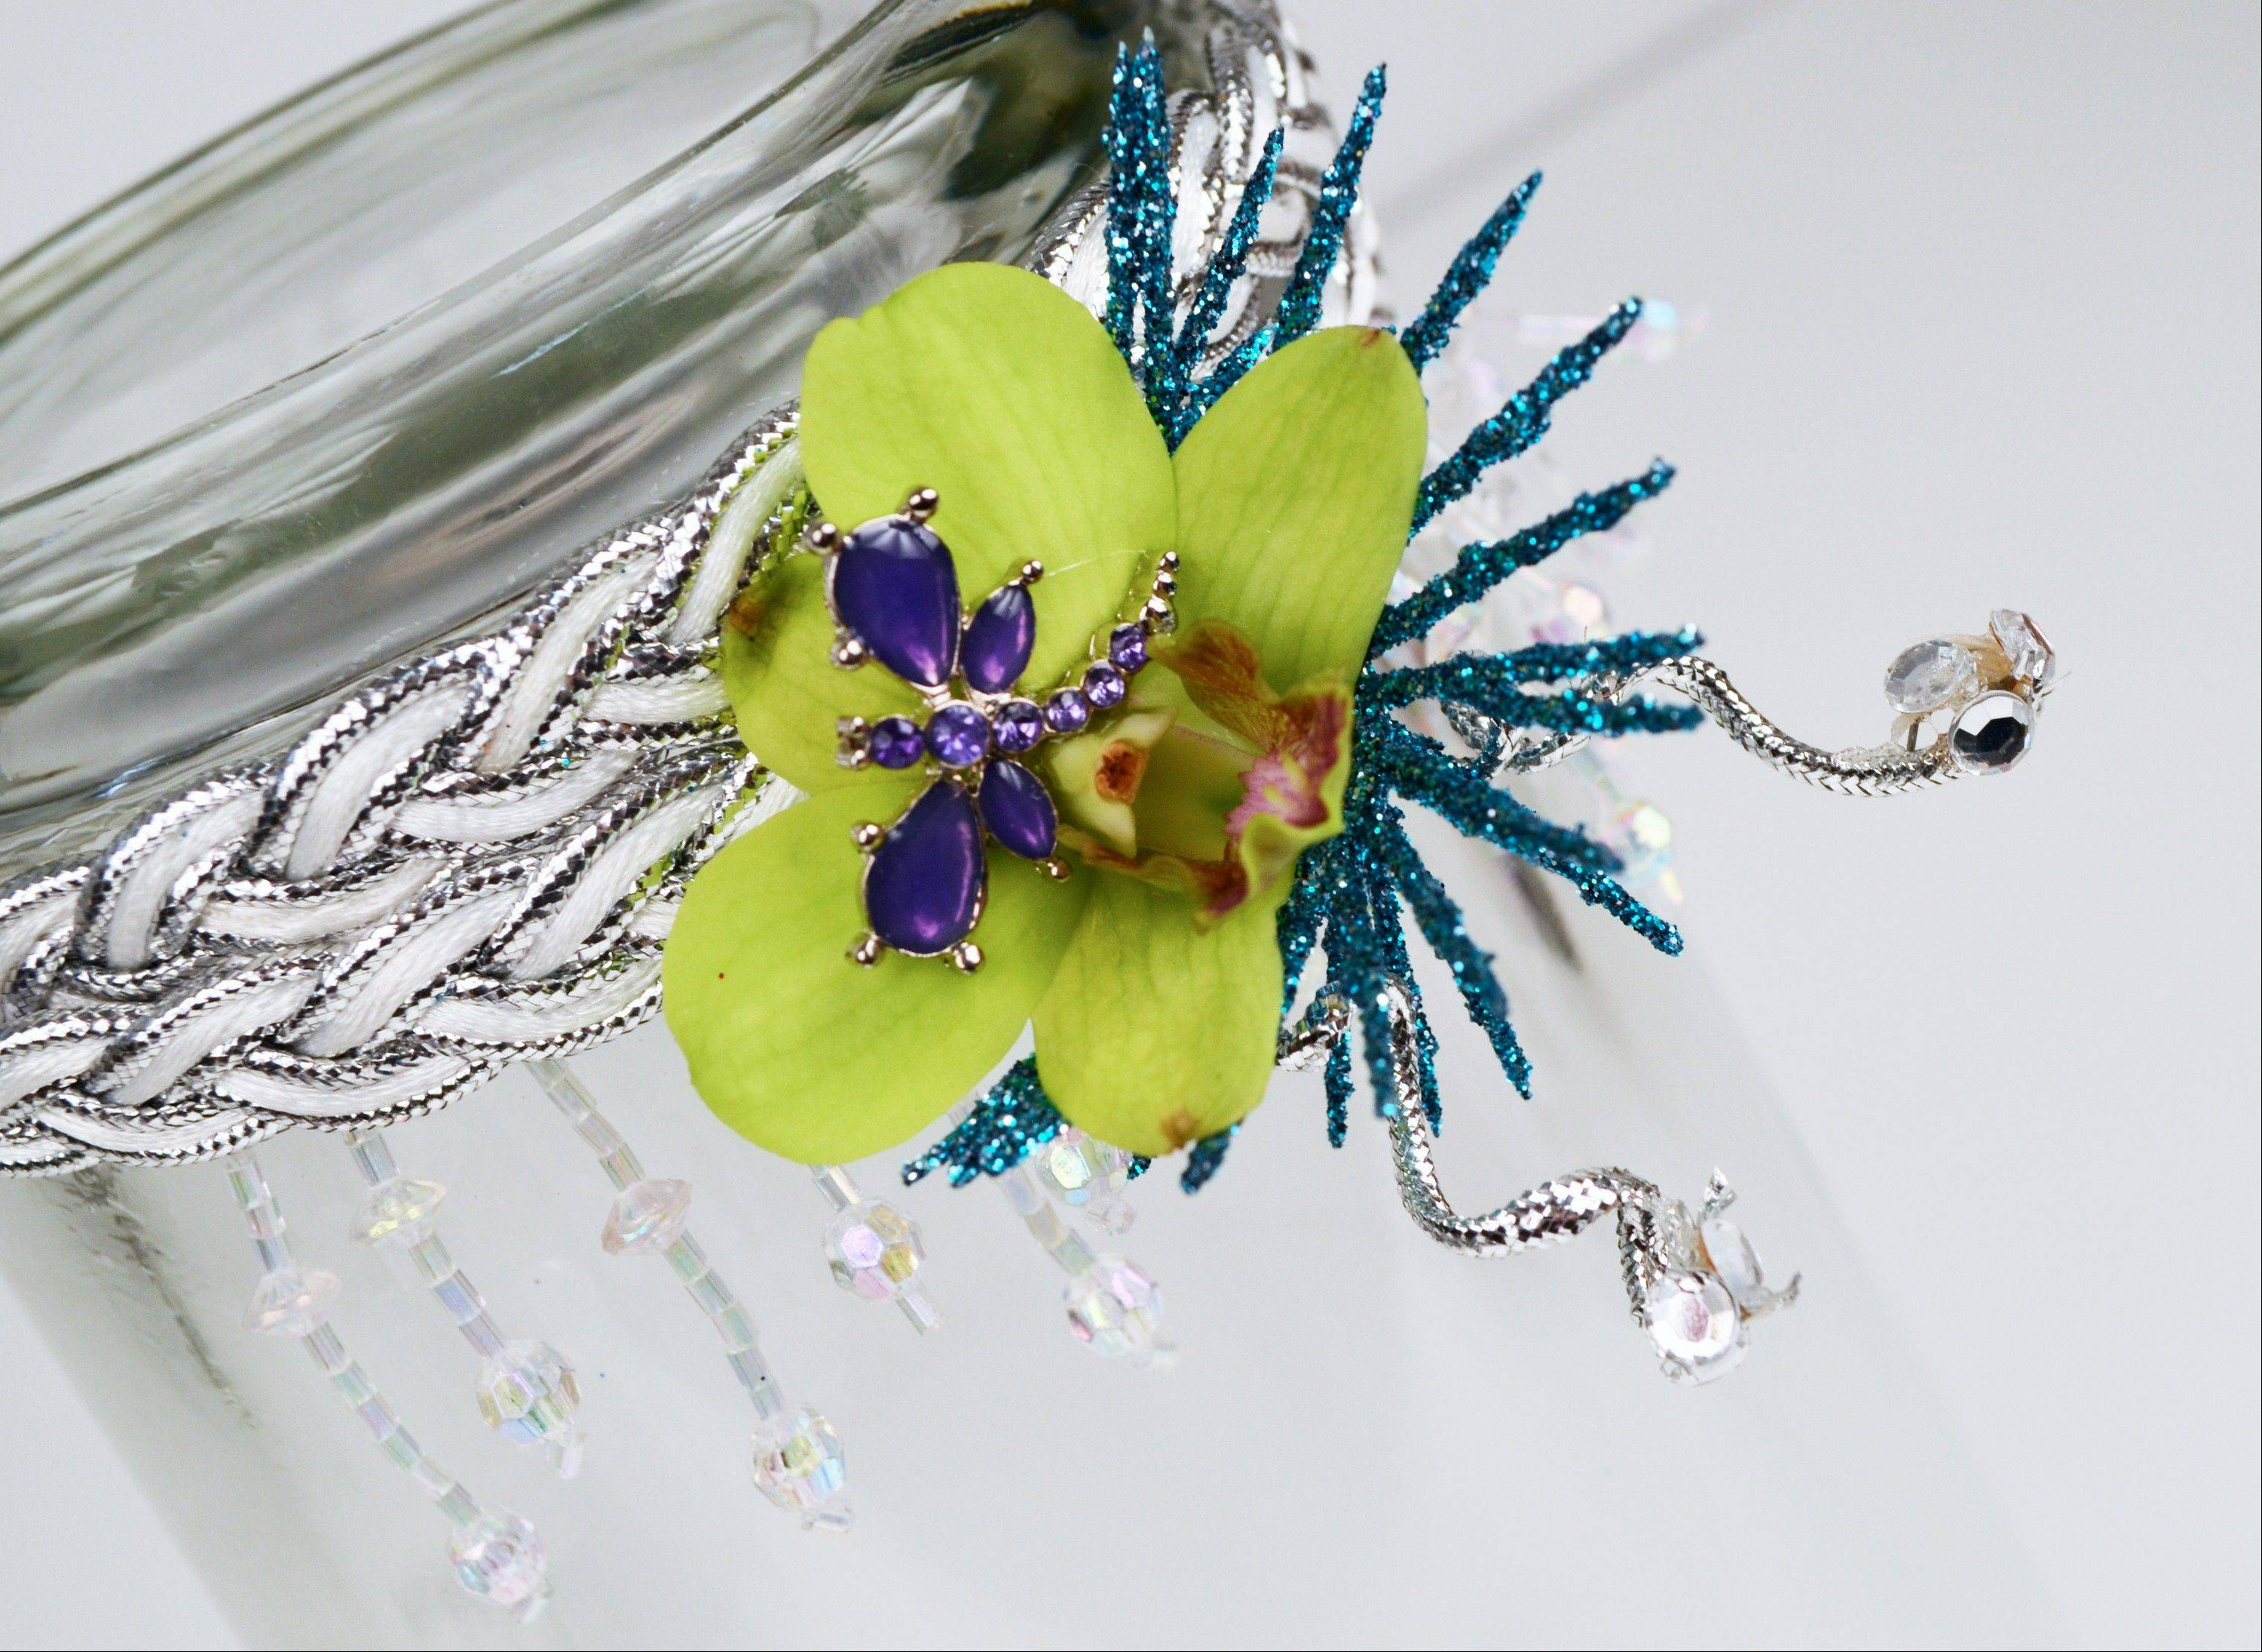 A floral headband is made with a green orchid, dragonfly pin, dangling beads, blue glittered leaves, silver accent ribbon, rhinestones and a braided silver and white headband.